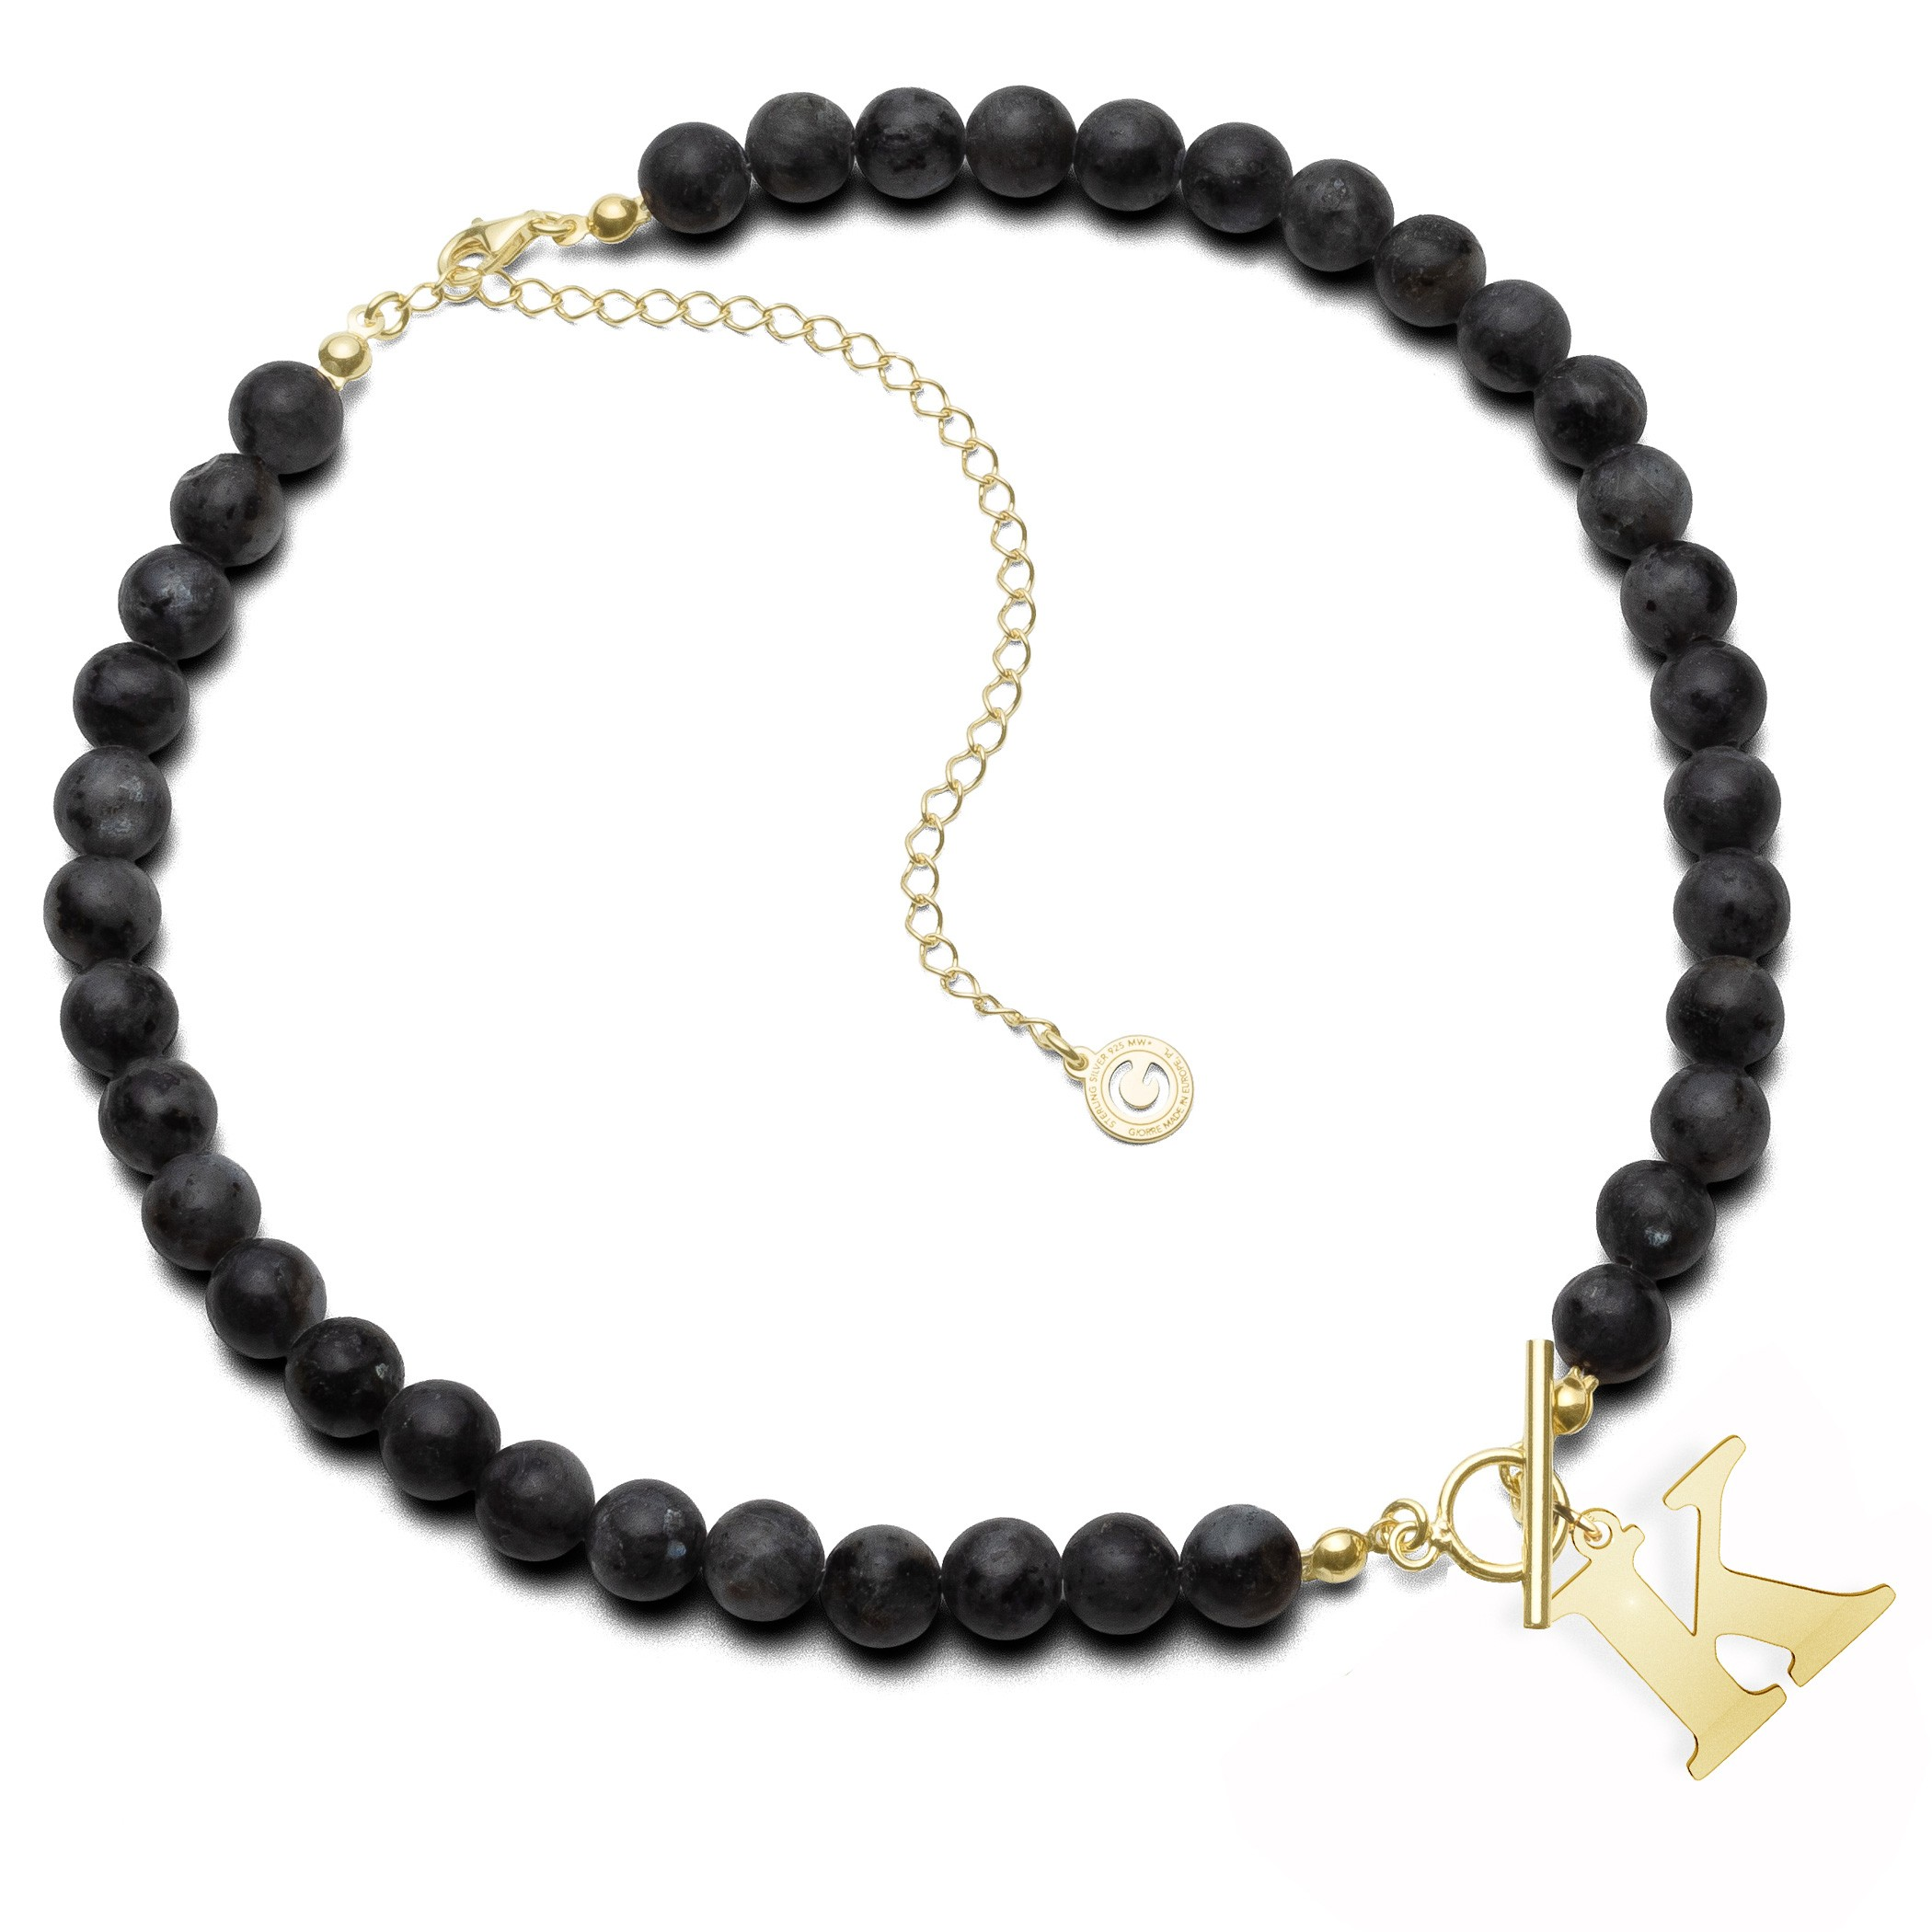 Black natural stones larvikit stones choker with letter, Silver 925